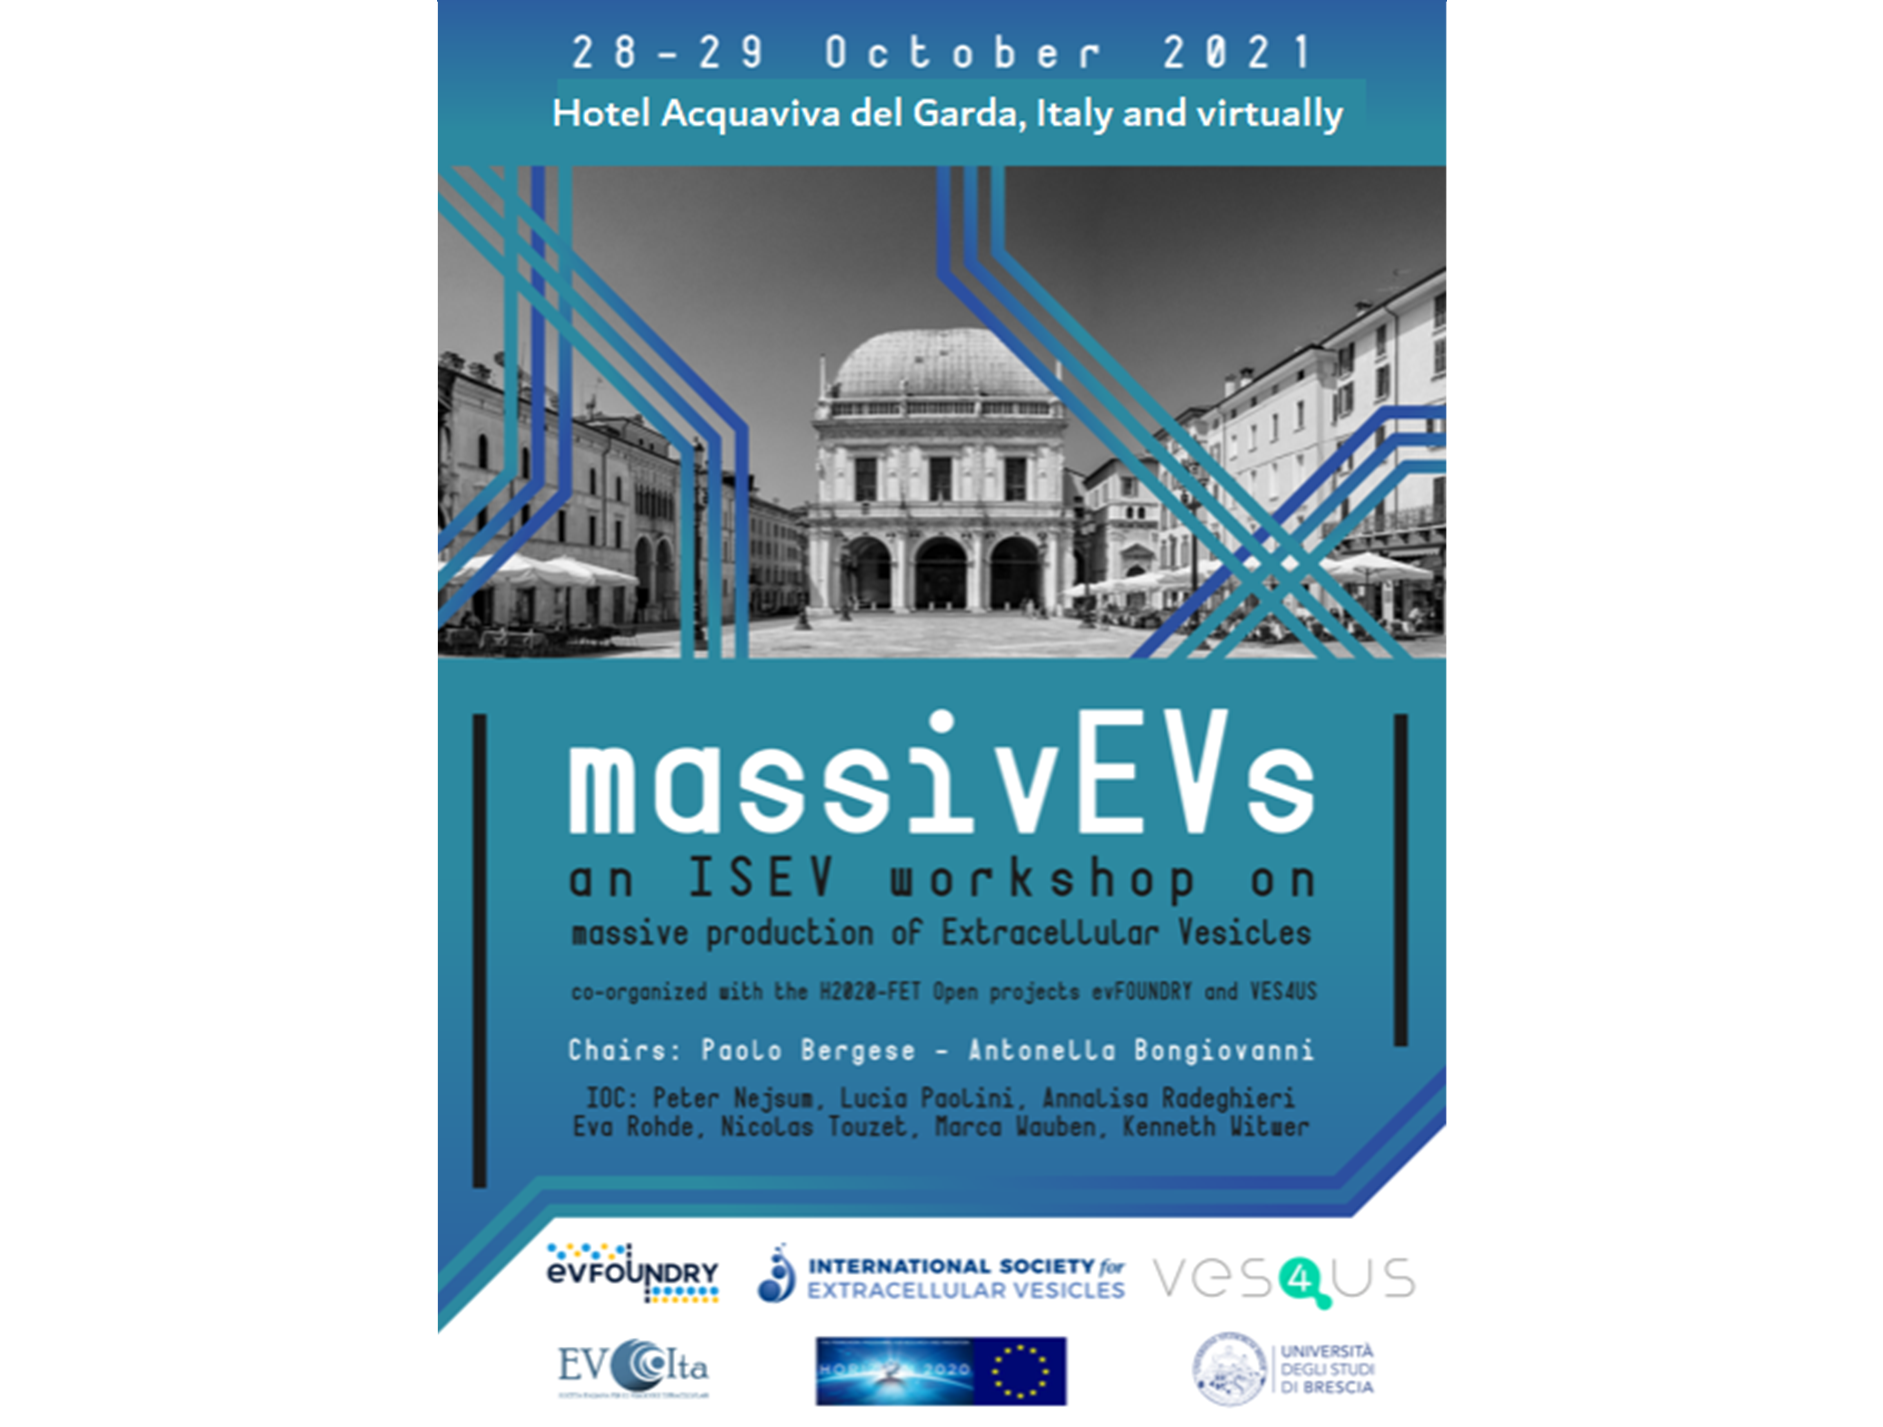 ISEV Workshop: massivEVs by umbrella projects